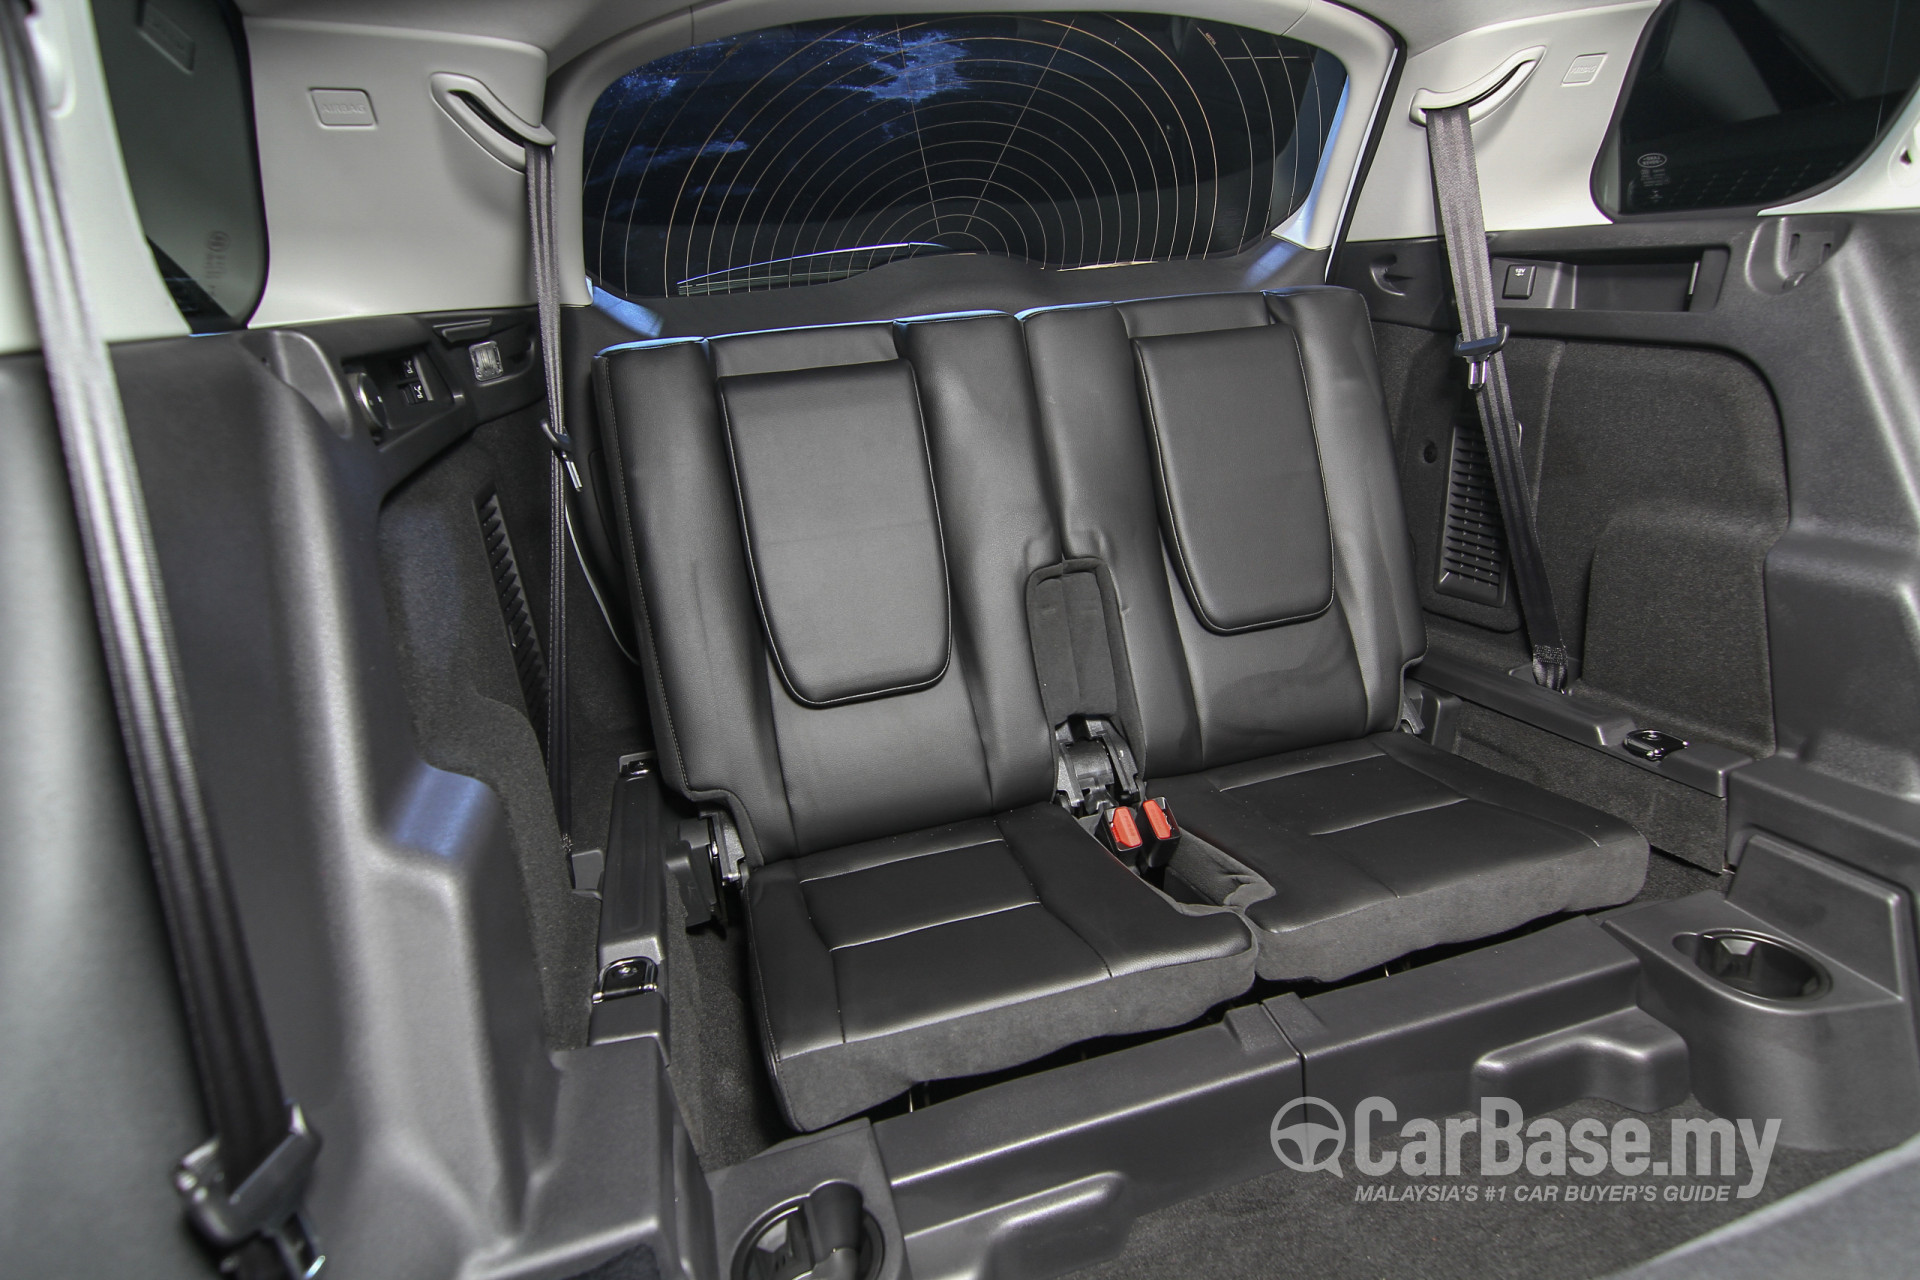 Land rover discovery sport l550 2015 interior image - Land rover discovery interior dimensions ...